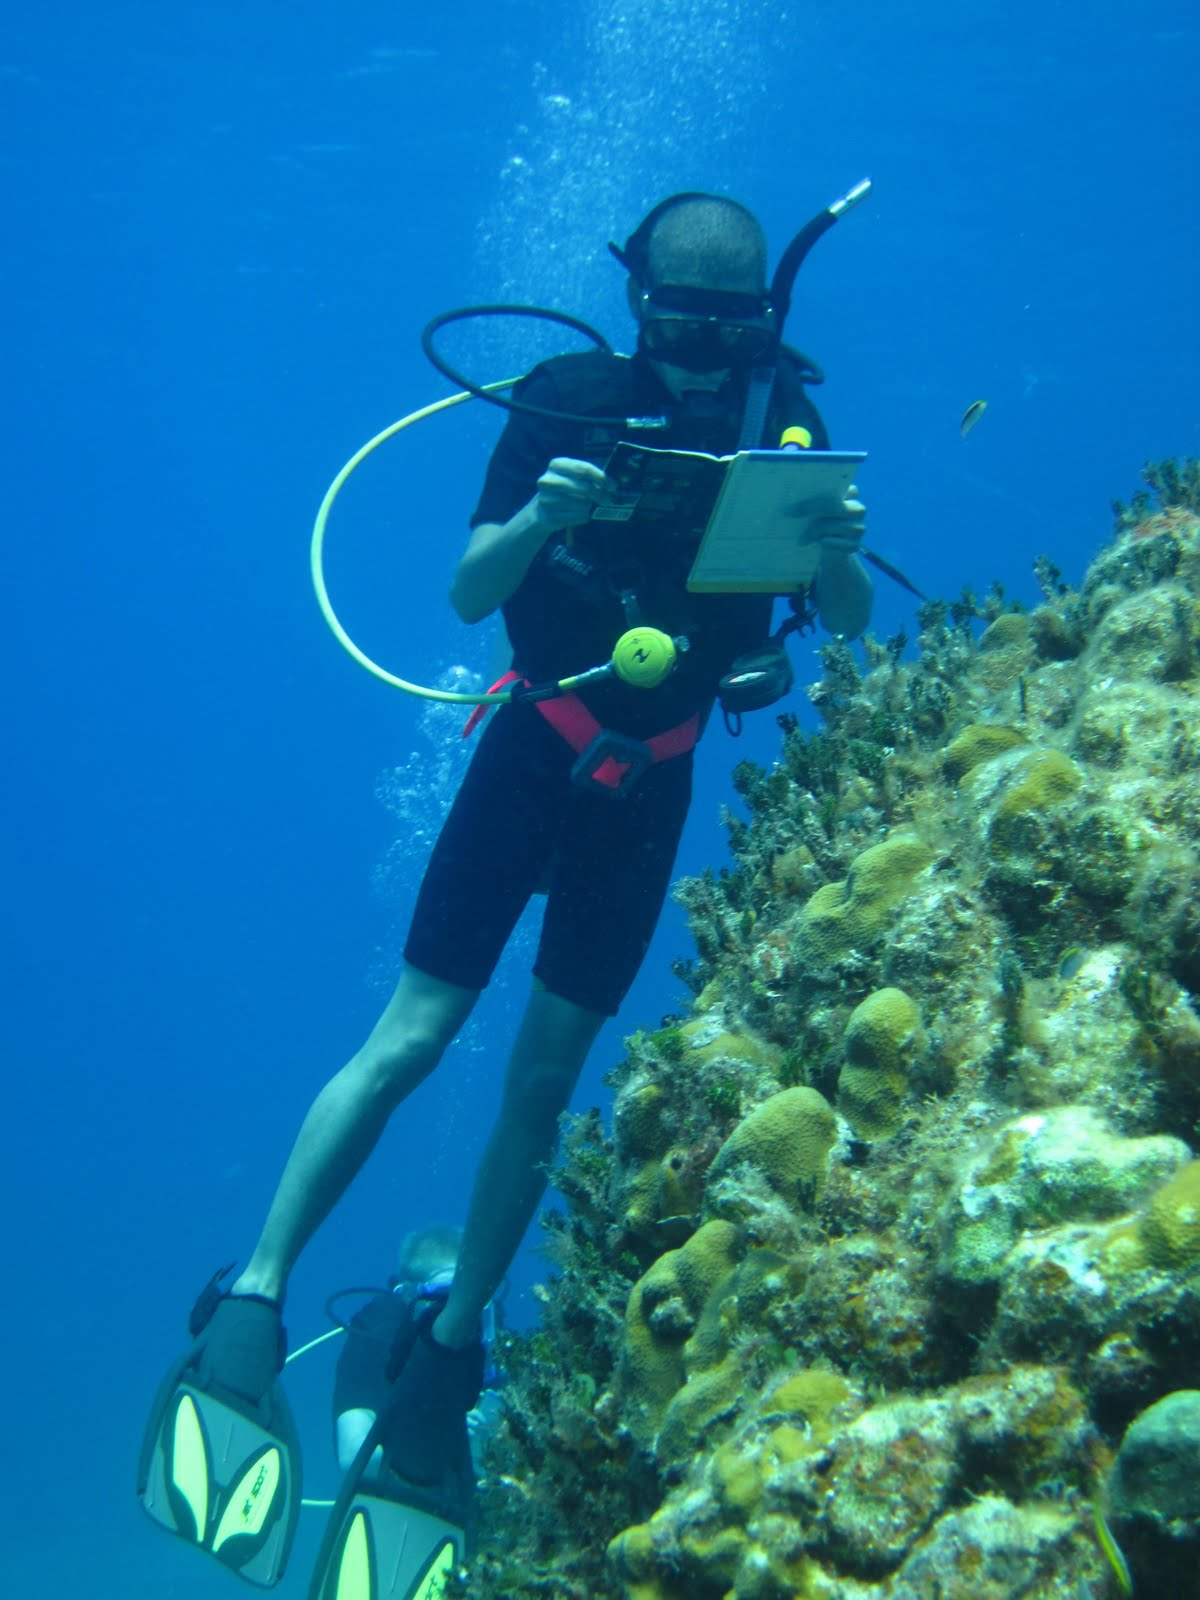 Giant ocean tank divers blog josh identifying animals underwater for a reef reef environmental education foundation fish survey xflitez Images